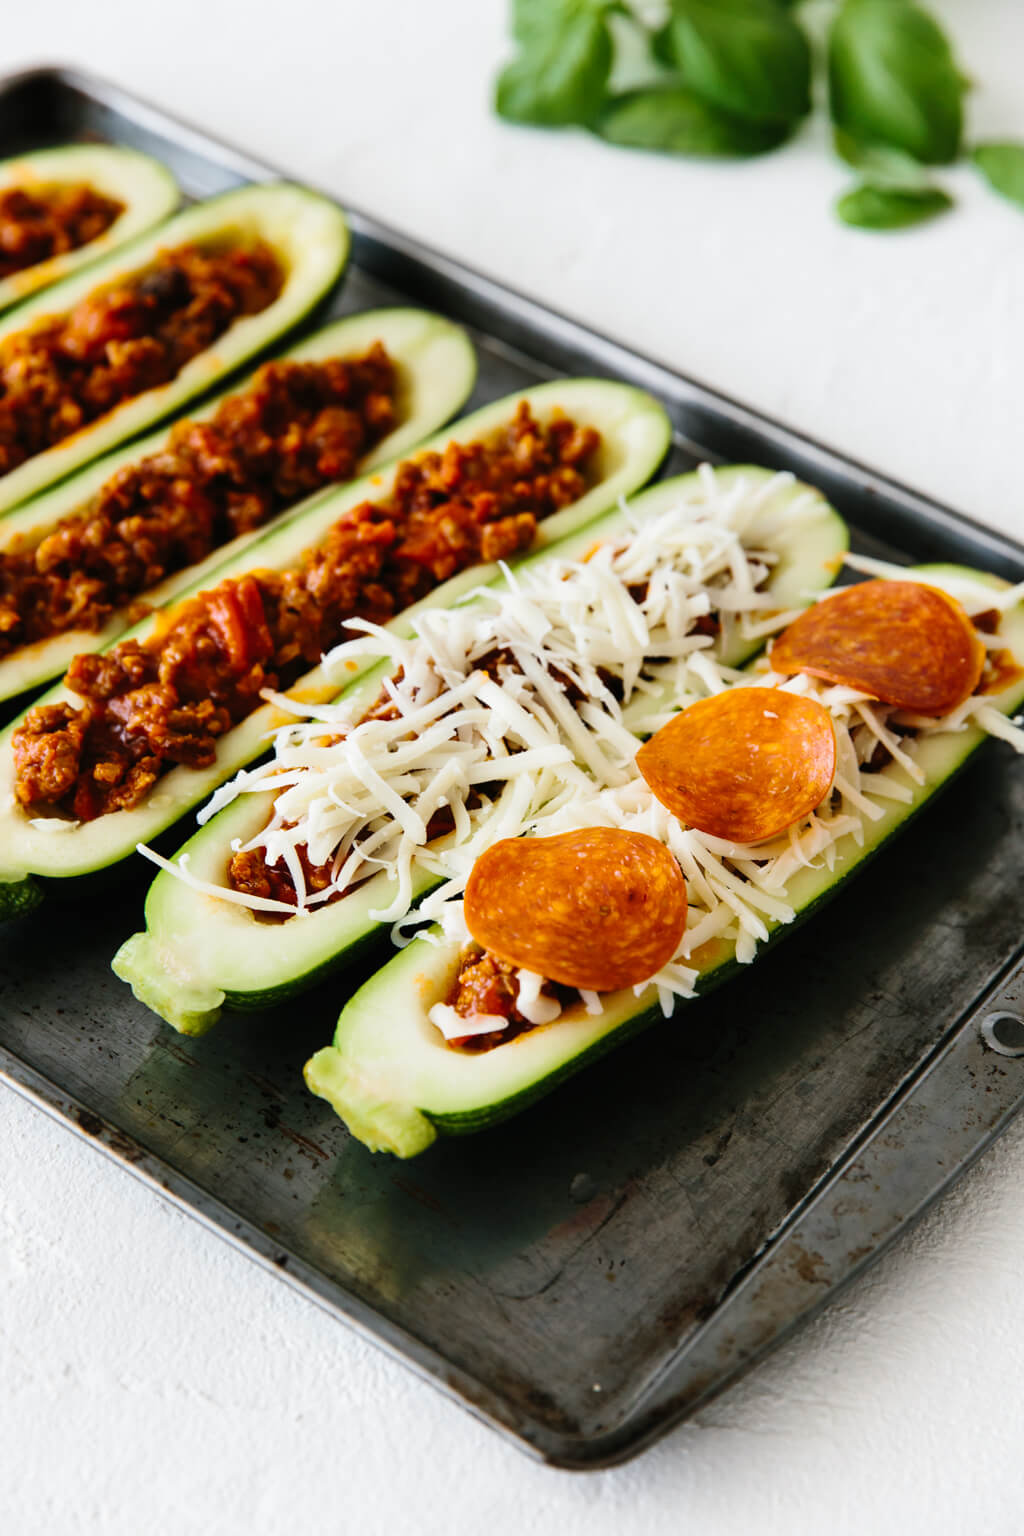 Zucchini halves stuffed with Italian sausage, mozzarella and pepperoni.